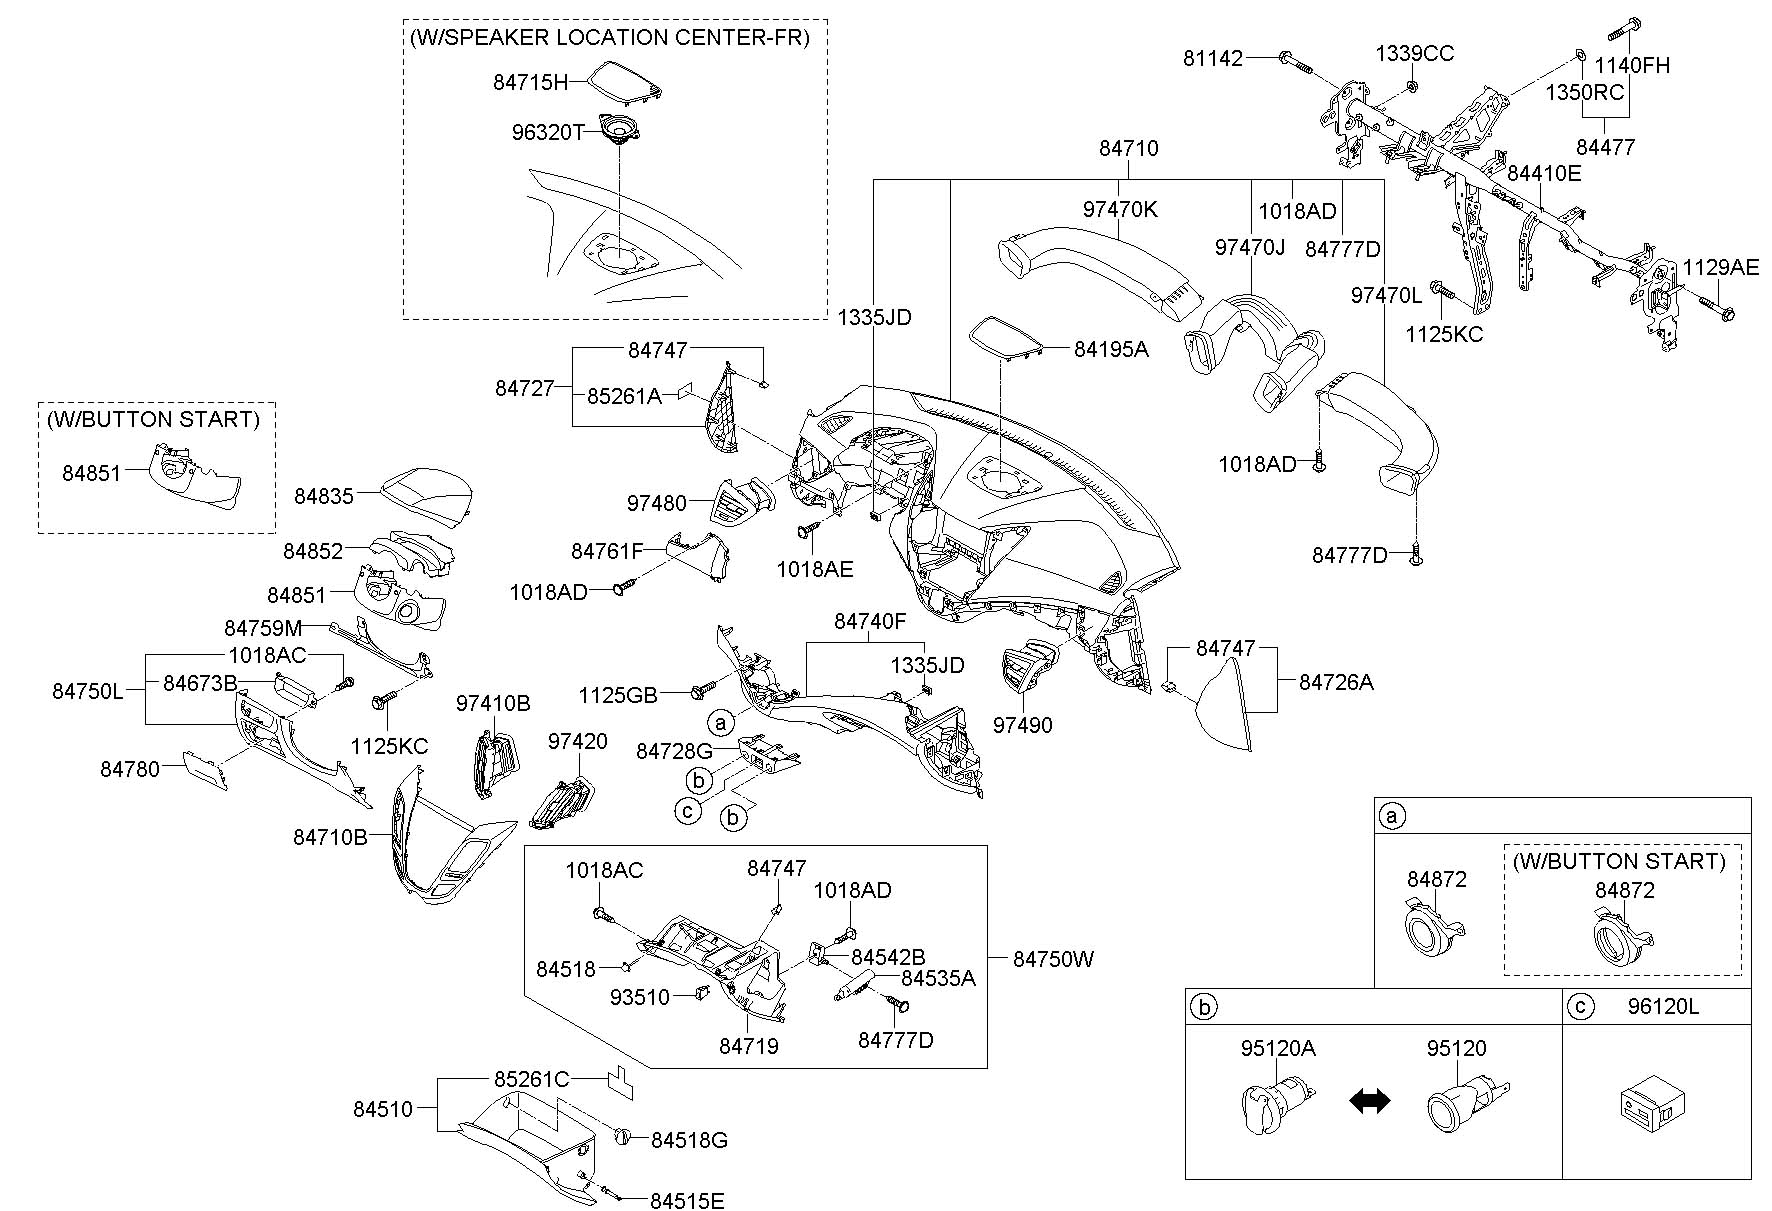 hyundai sonata dash parts diagram  hyundai  free engine